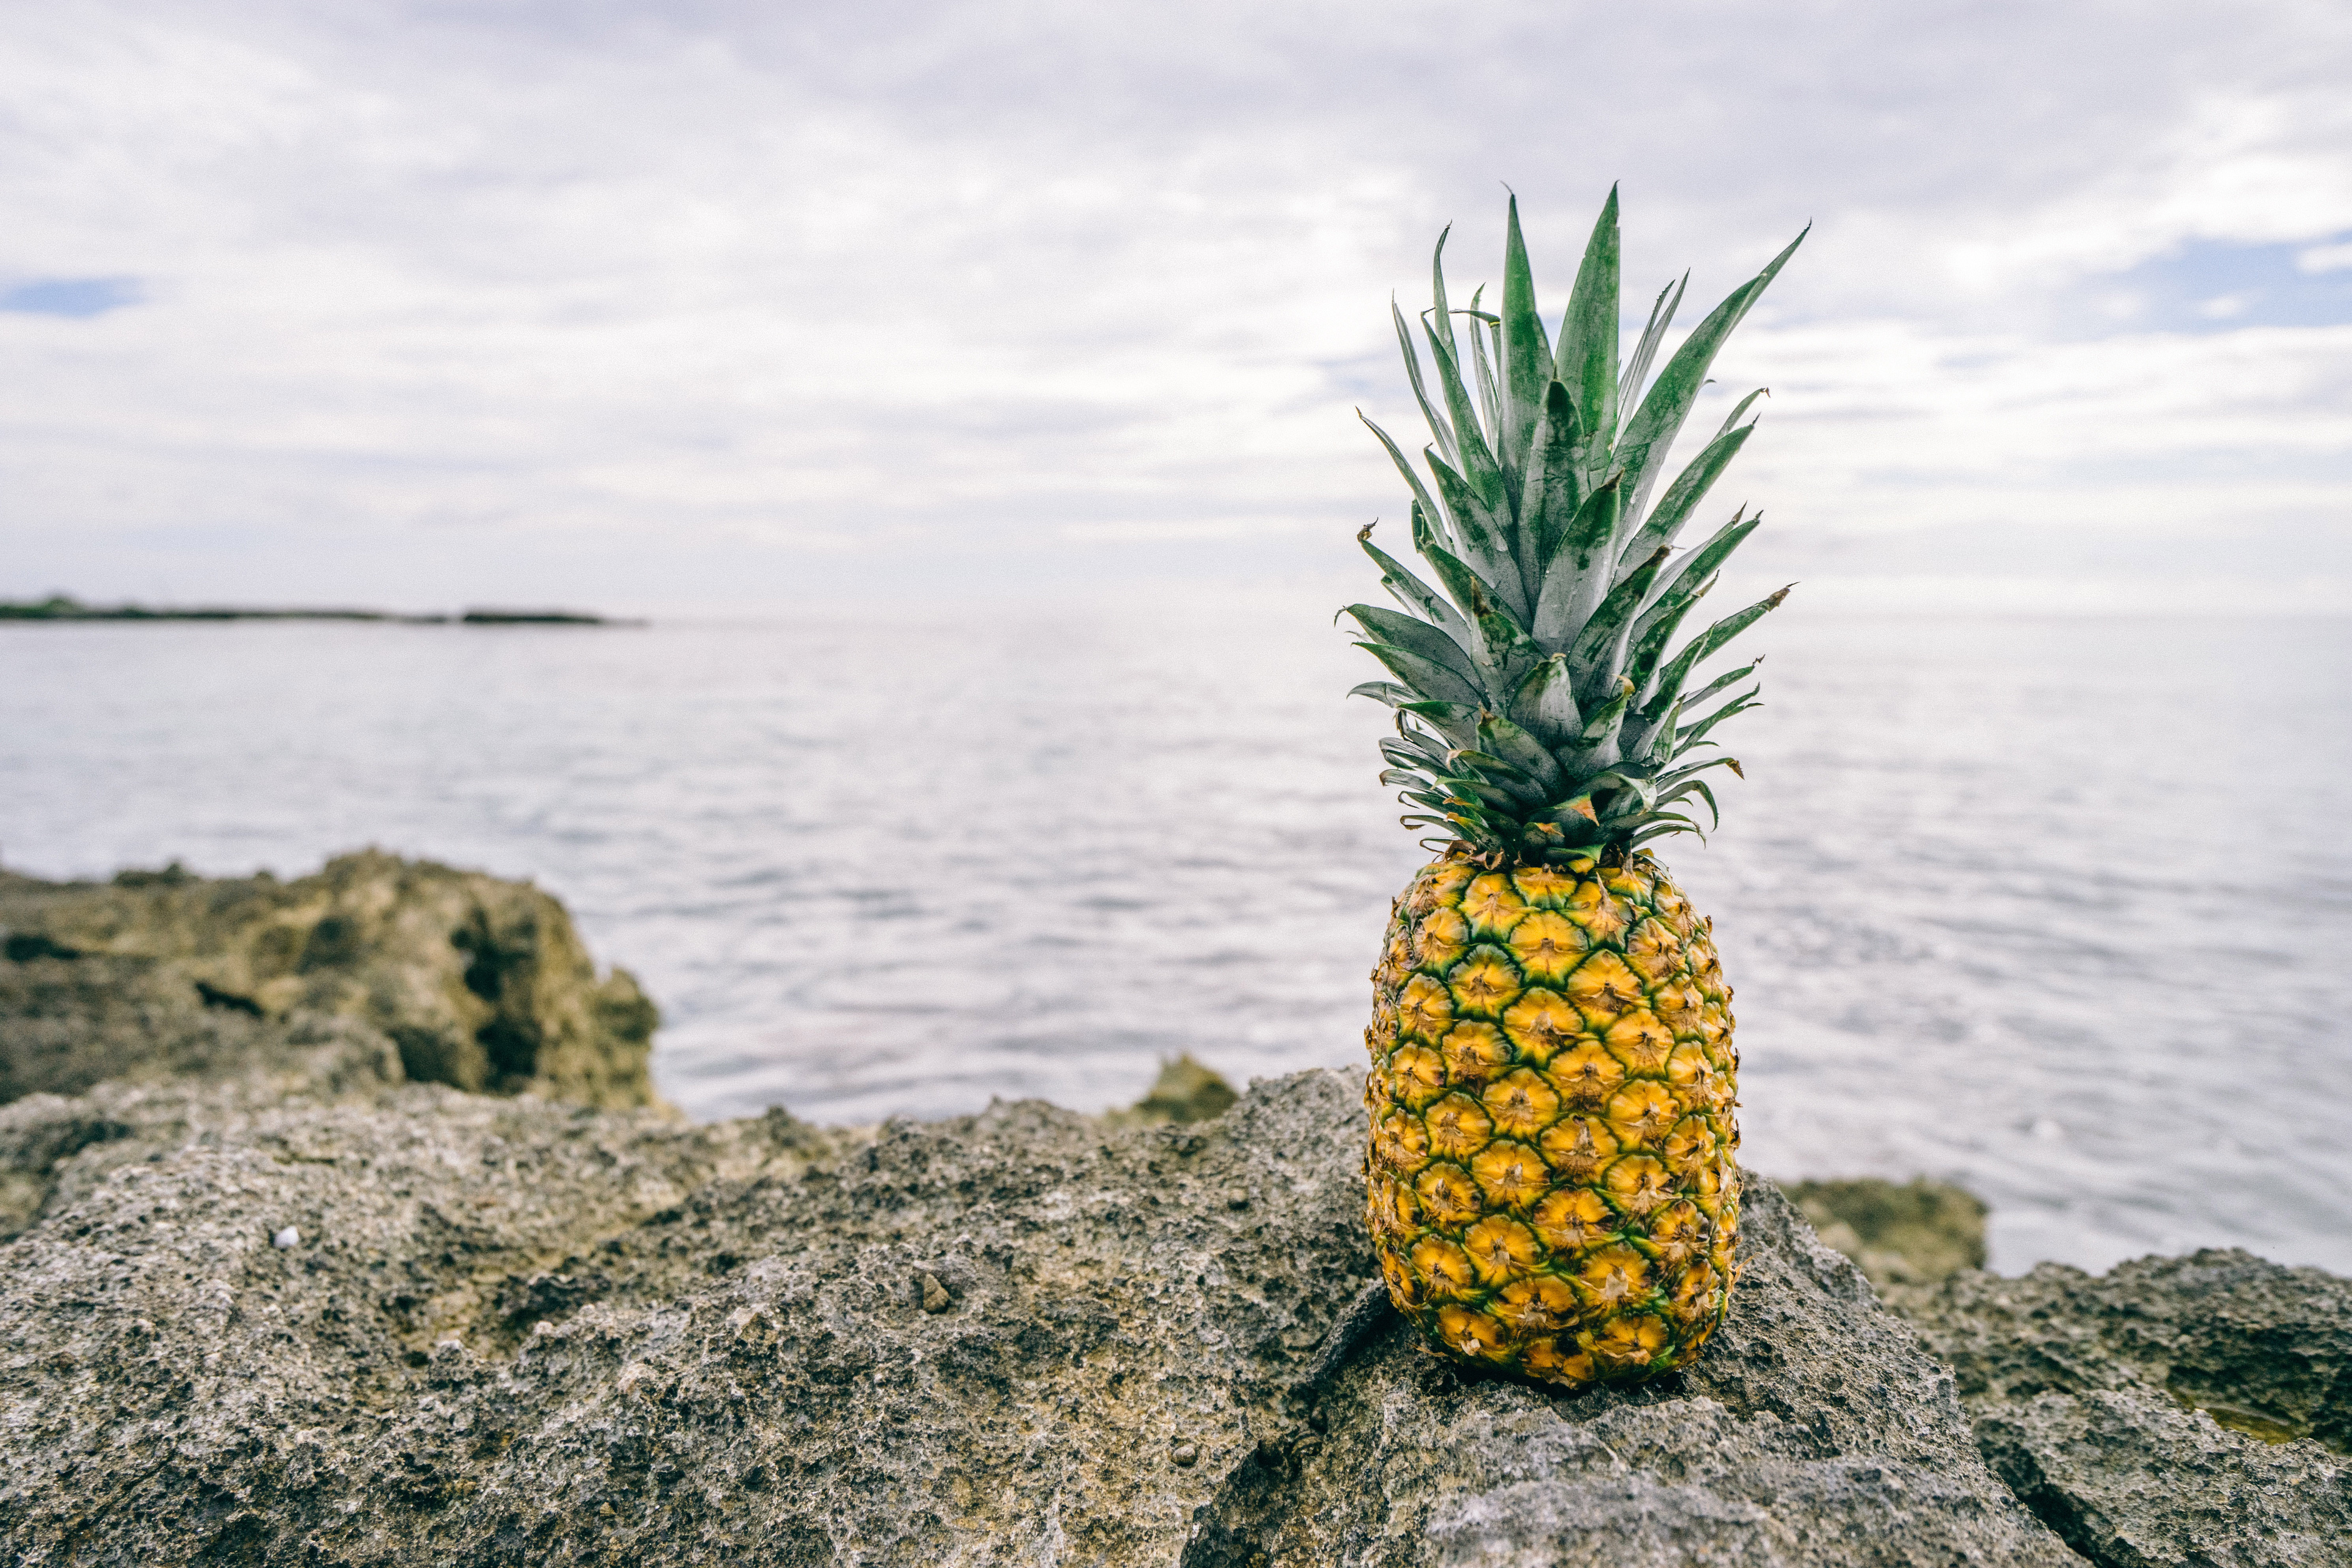 Free Photography Stock Pineapple By The Seaside Image Free Stock Photo Public Domain